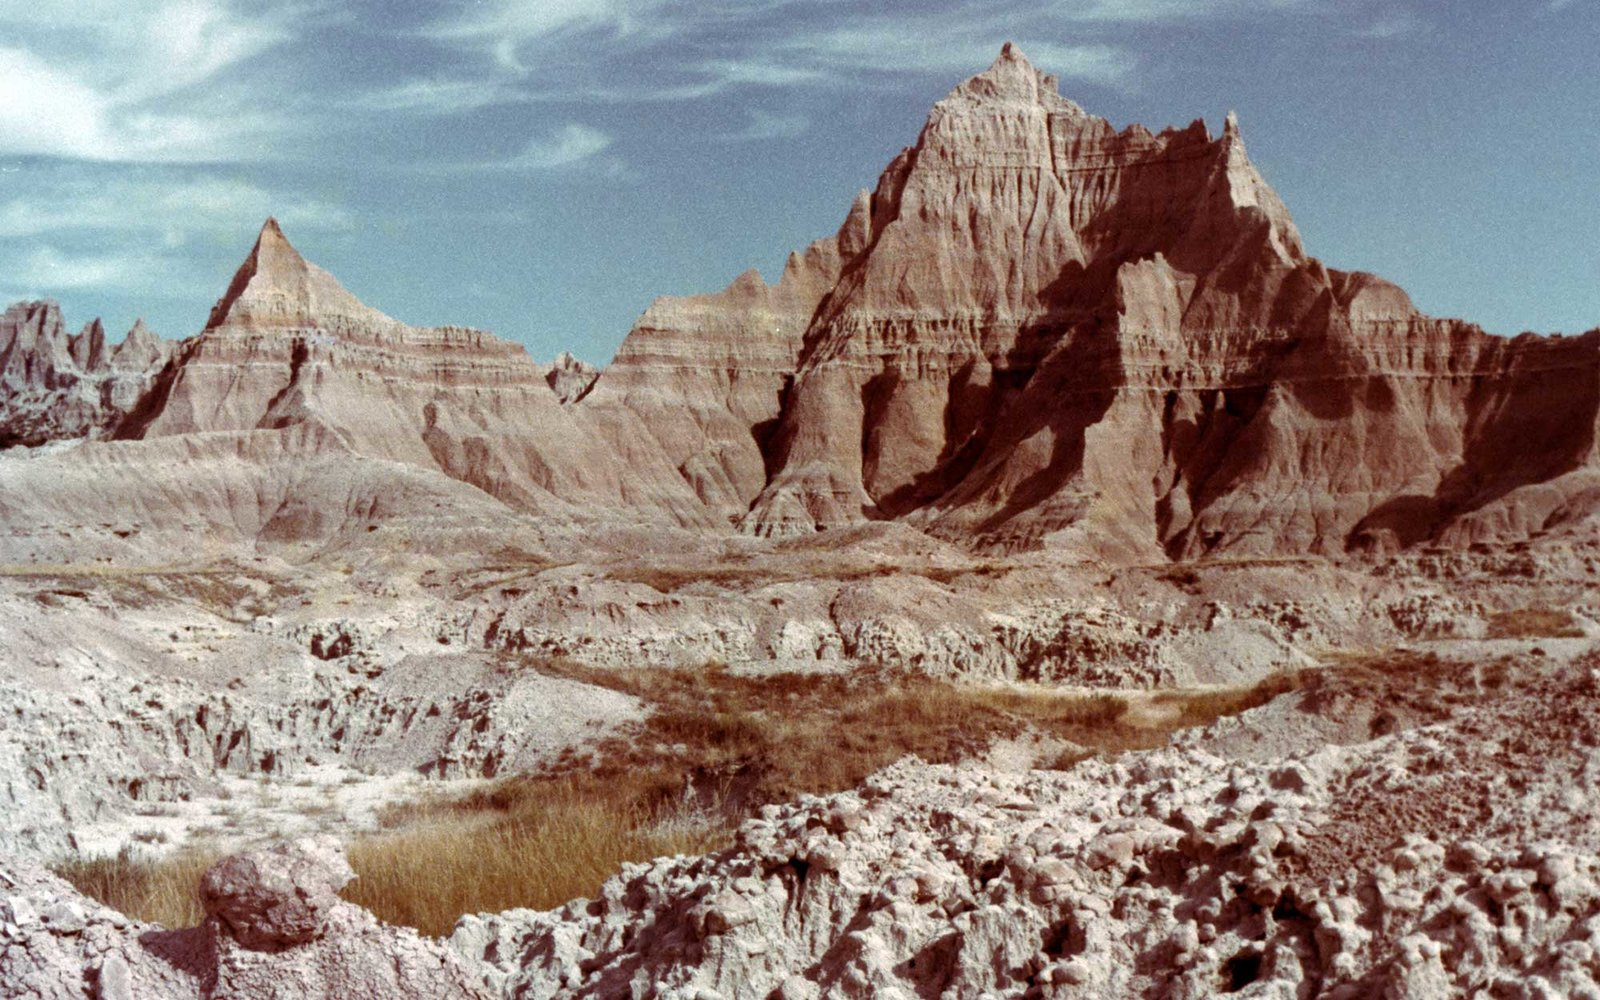 Eroded Peaks with blue sky and whispy clouds, Badlands National Park, South Dakota, 1975. (Photo by Smith Collection/Gado/Getty Images).